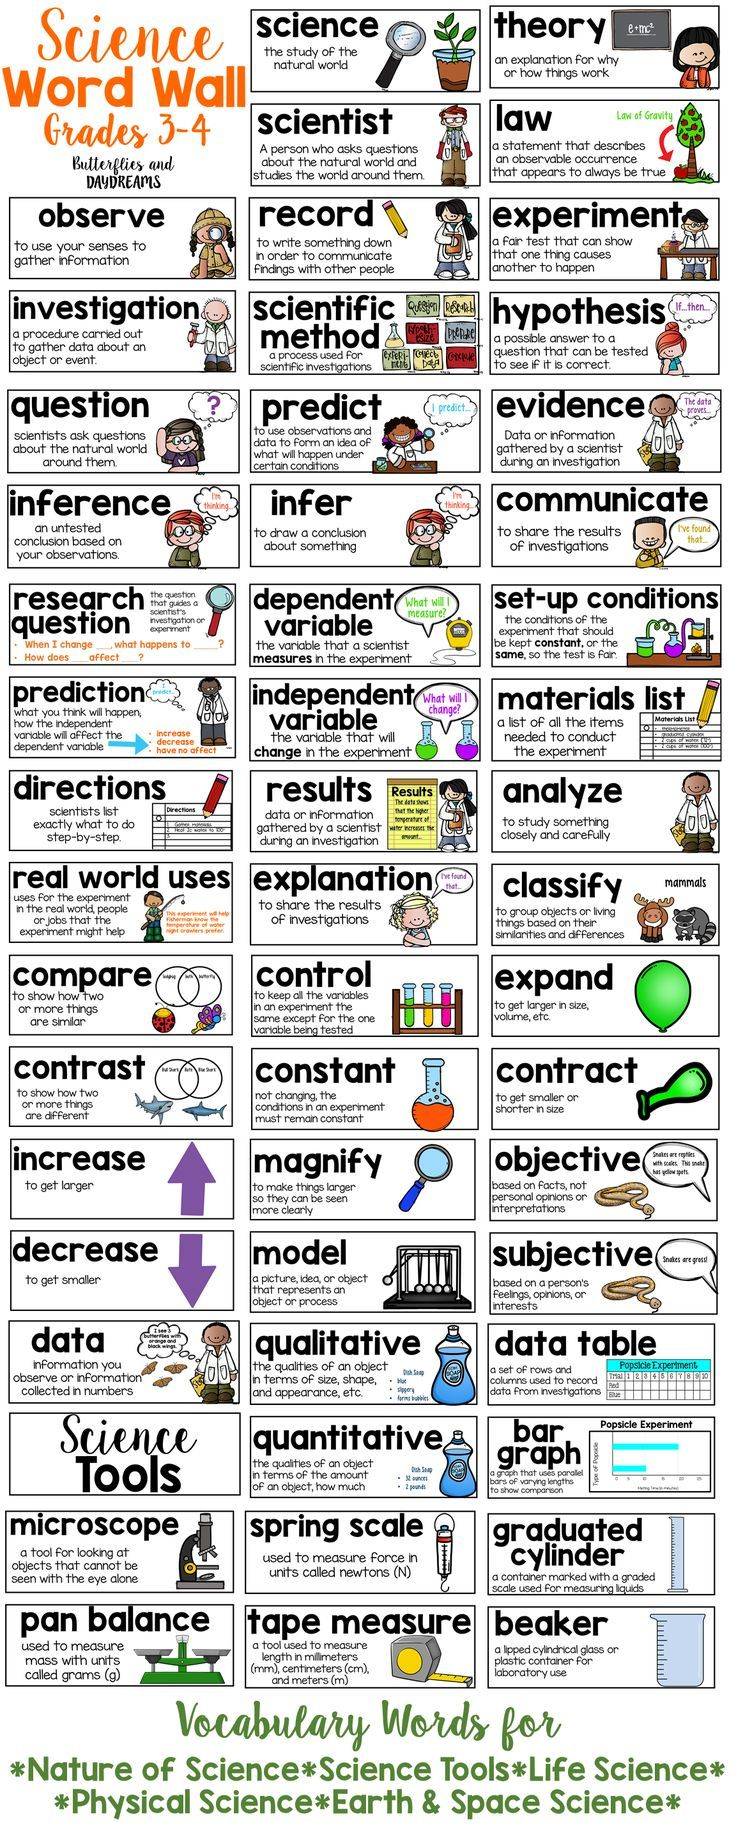 Science word wall for grades 3 4 homeschool curriculum for Words for soil